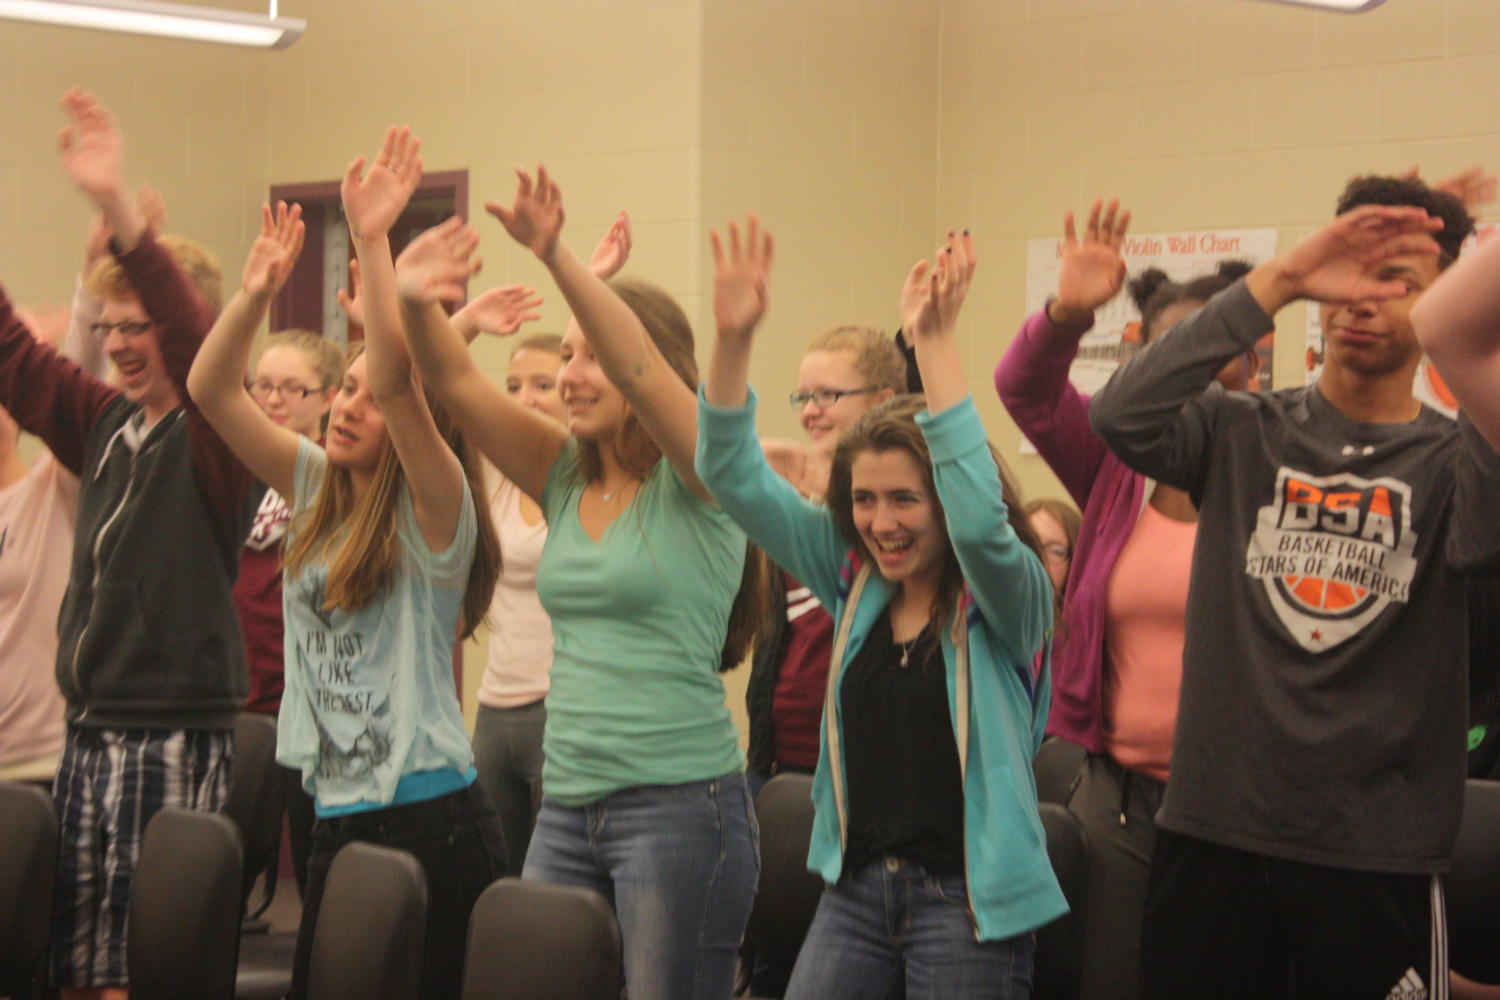 All smiles! The class shares laughter when dancing. The class was excited to perform at their last Jr. High concert.